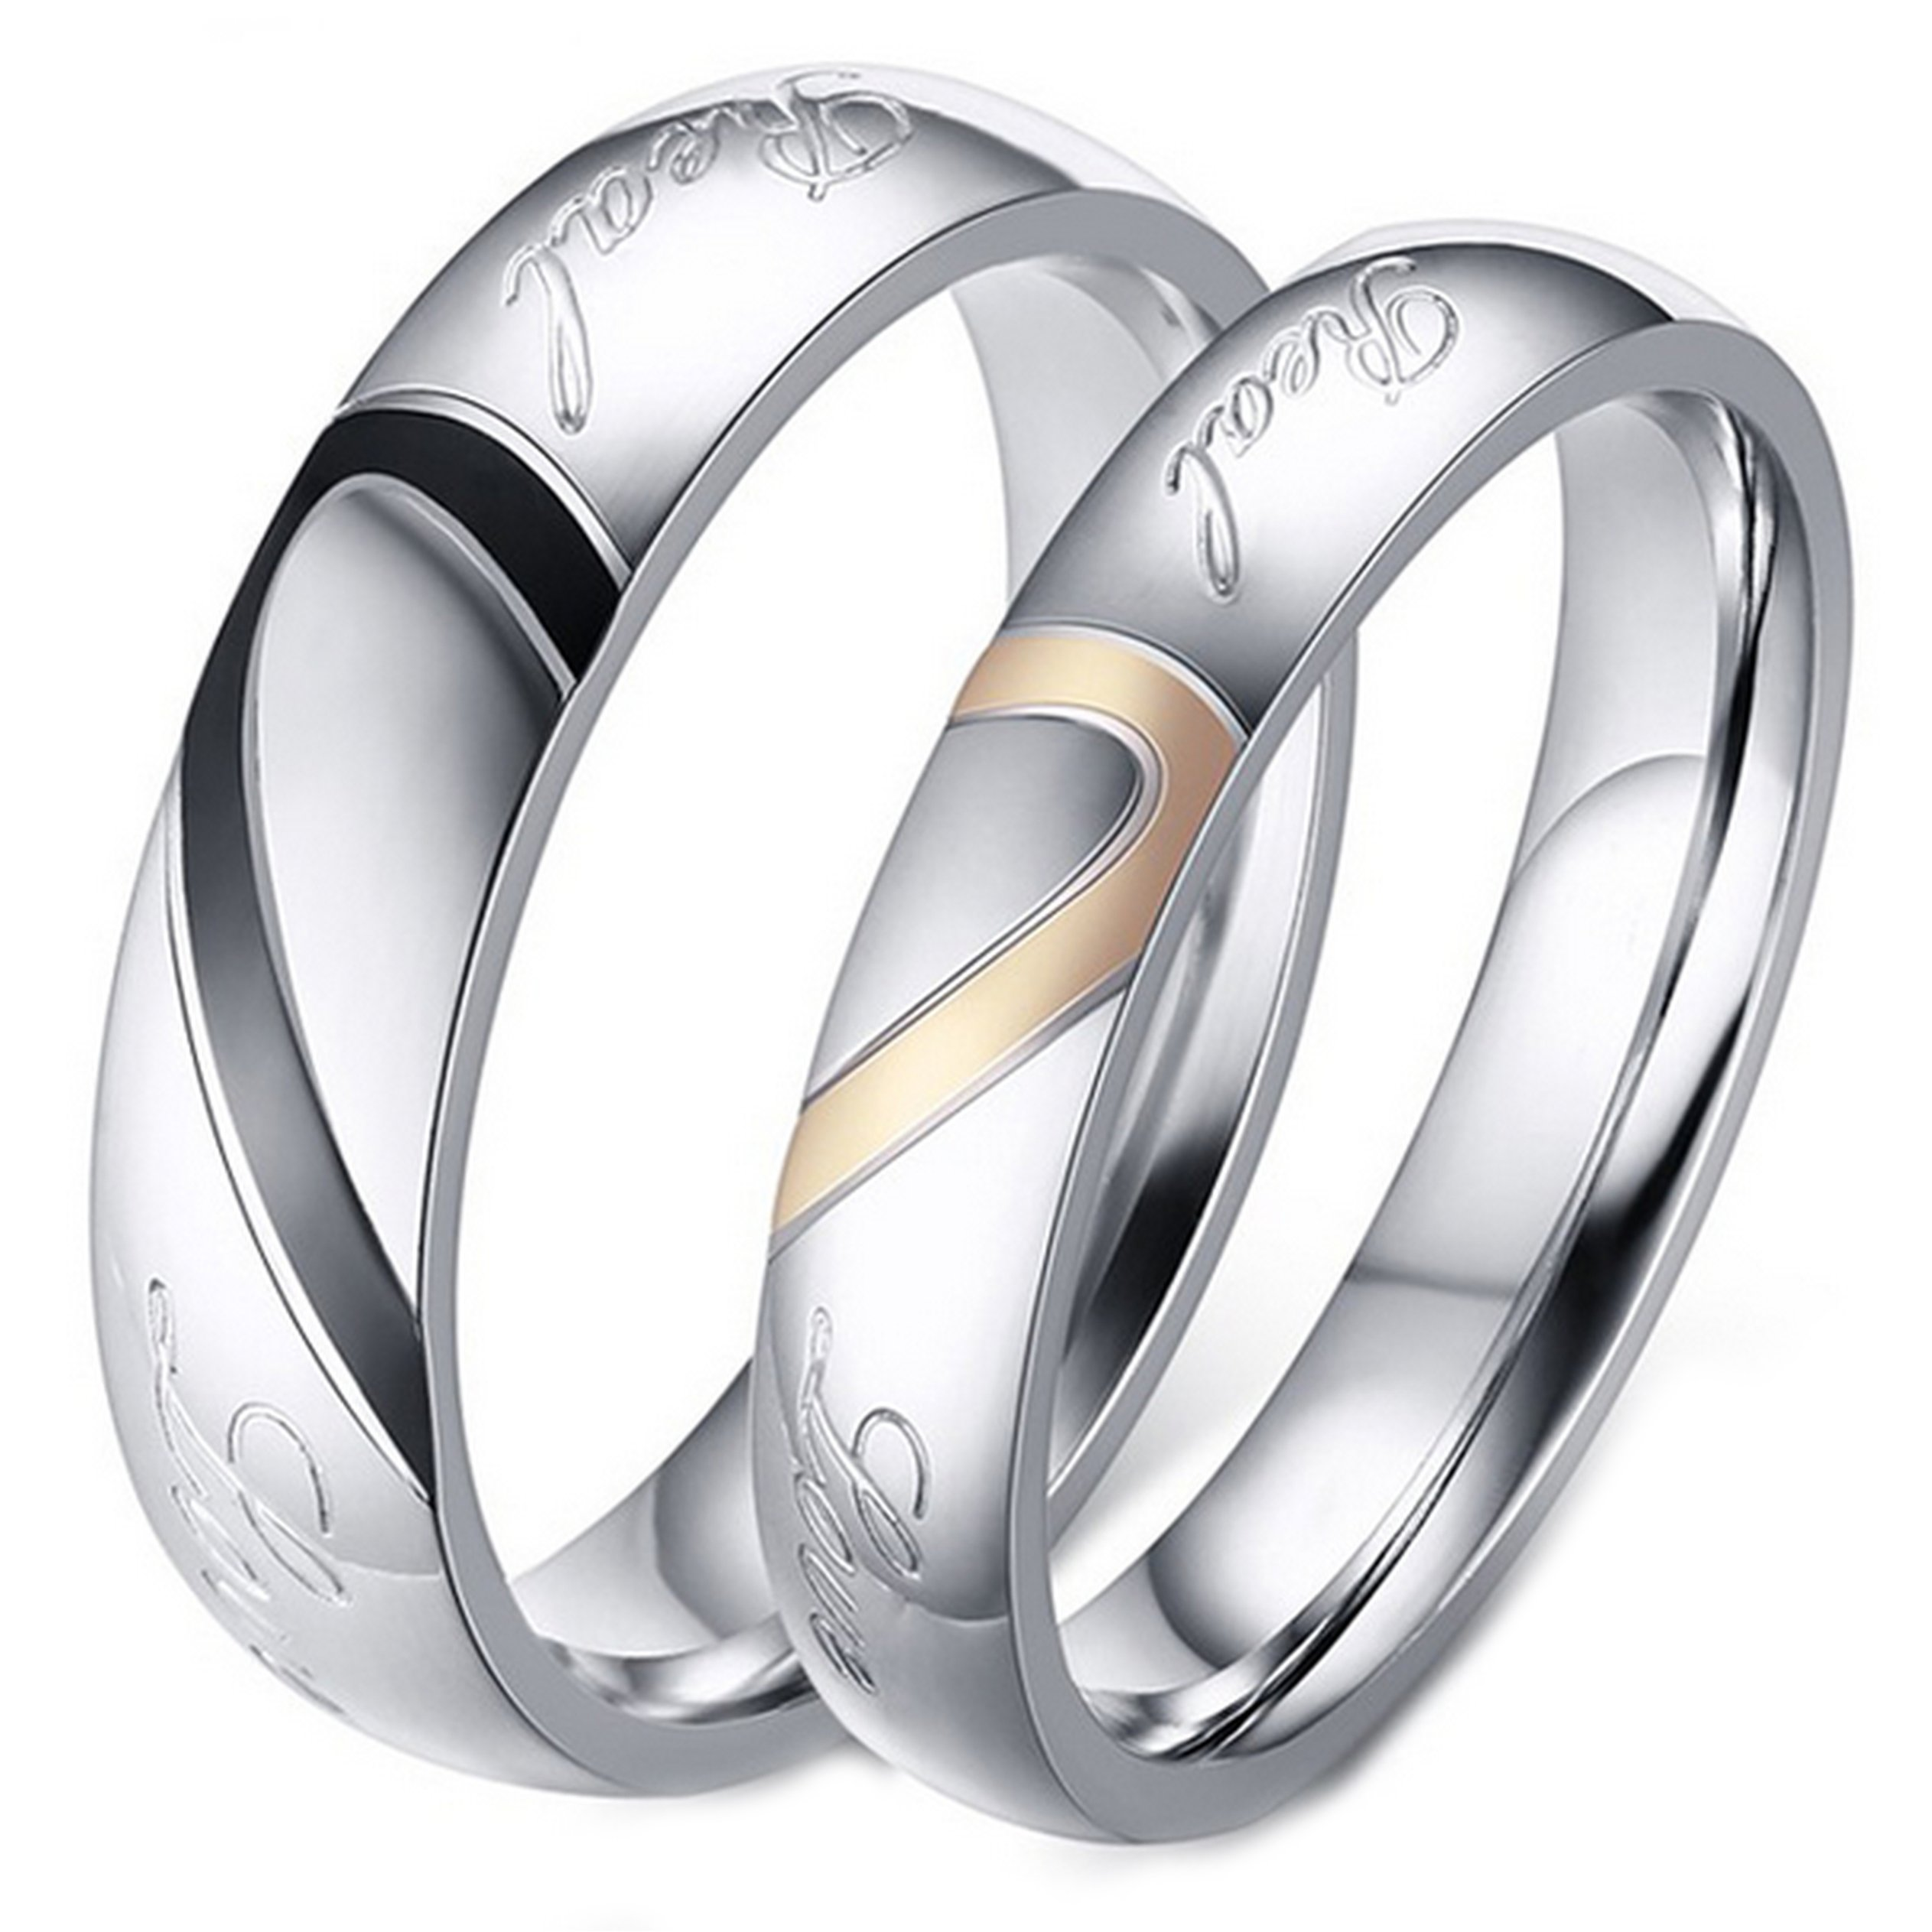 90946e6d3a675 His and Her Real Love Promise Ring, Couple's Matching Heart Wedding Band in  Stainless Steel, for Men and Women, Comfort Fit